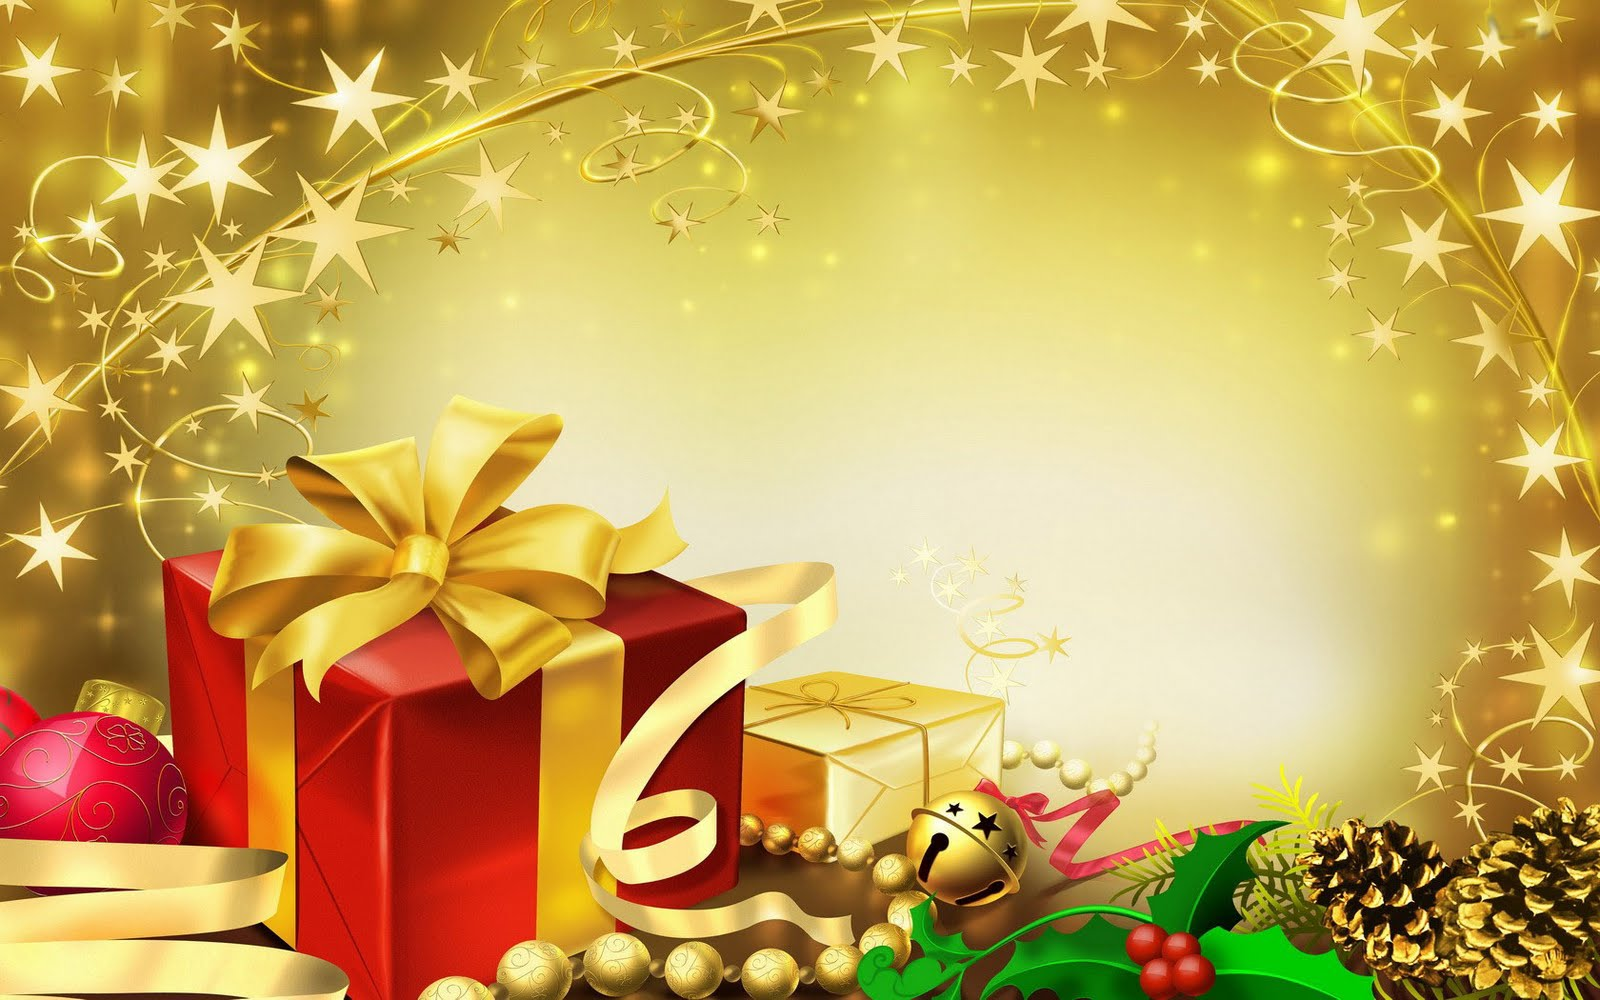 Free Christmas Wallpapers | Popular Wallpapers Downloads